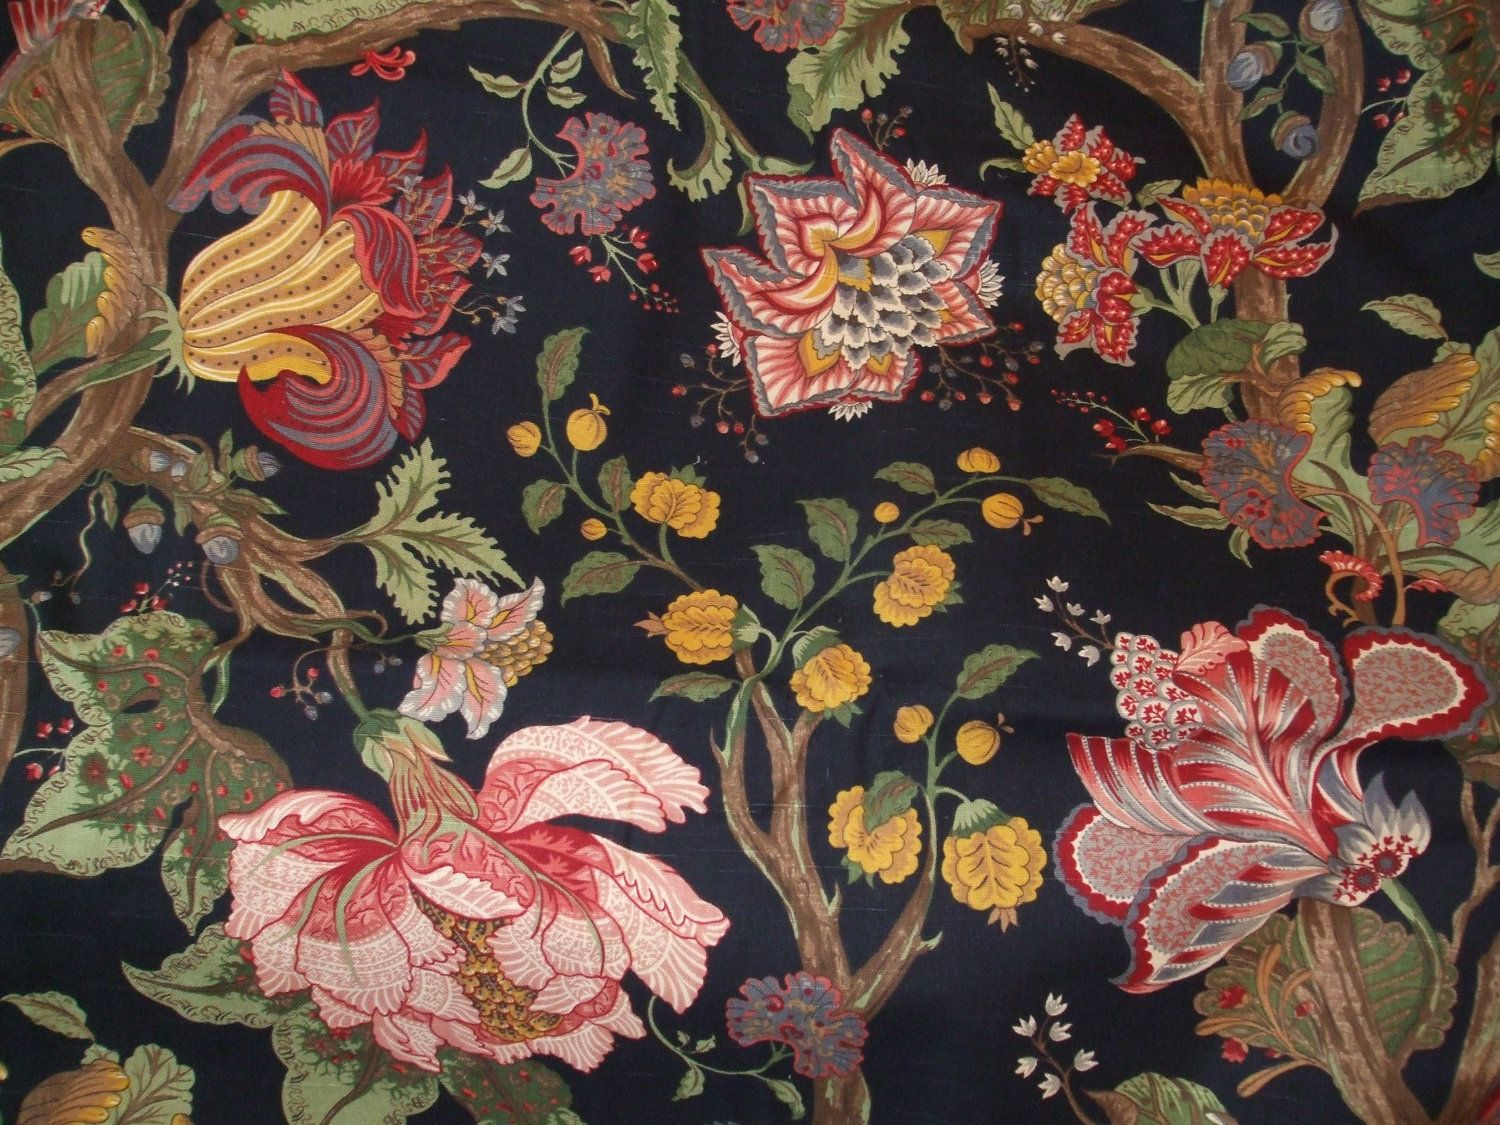 Western Textile Black Floral Fabric By Lornasfrontporch Floral Upholstery Fabric Floral Upholstery Large Scale Floral